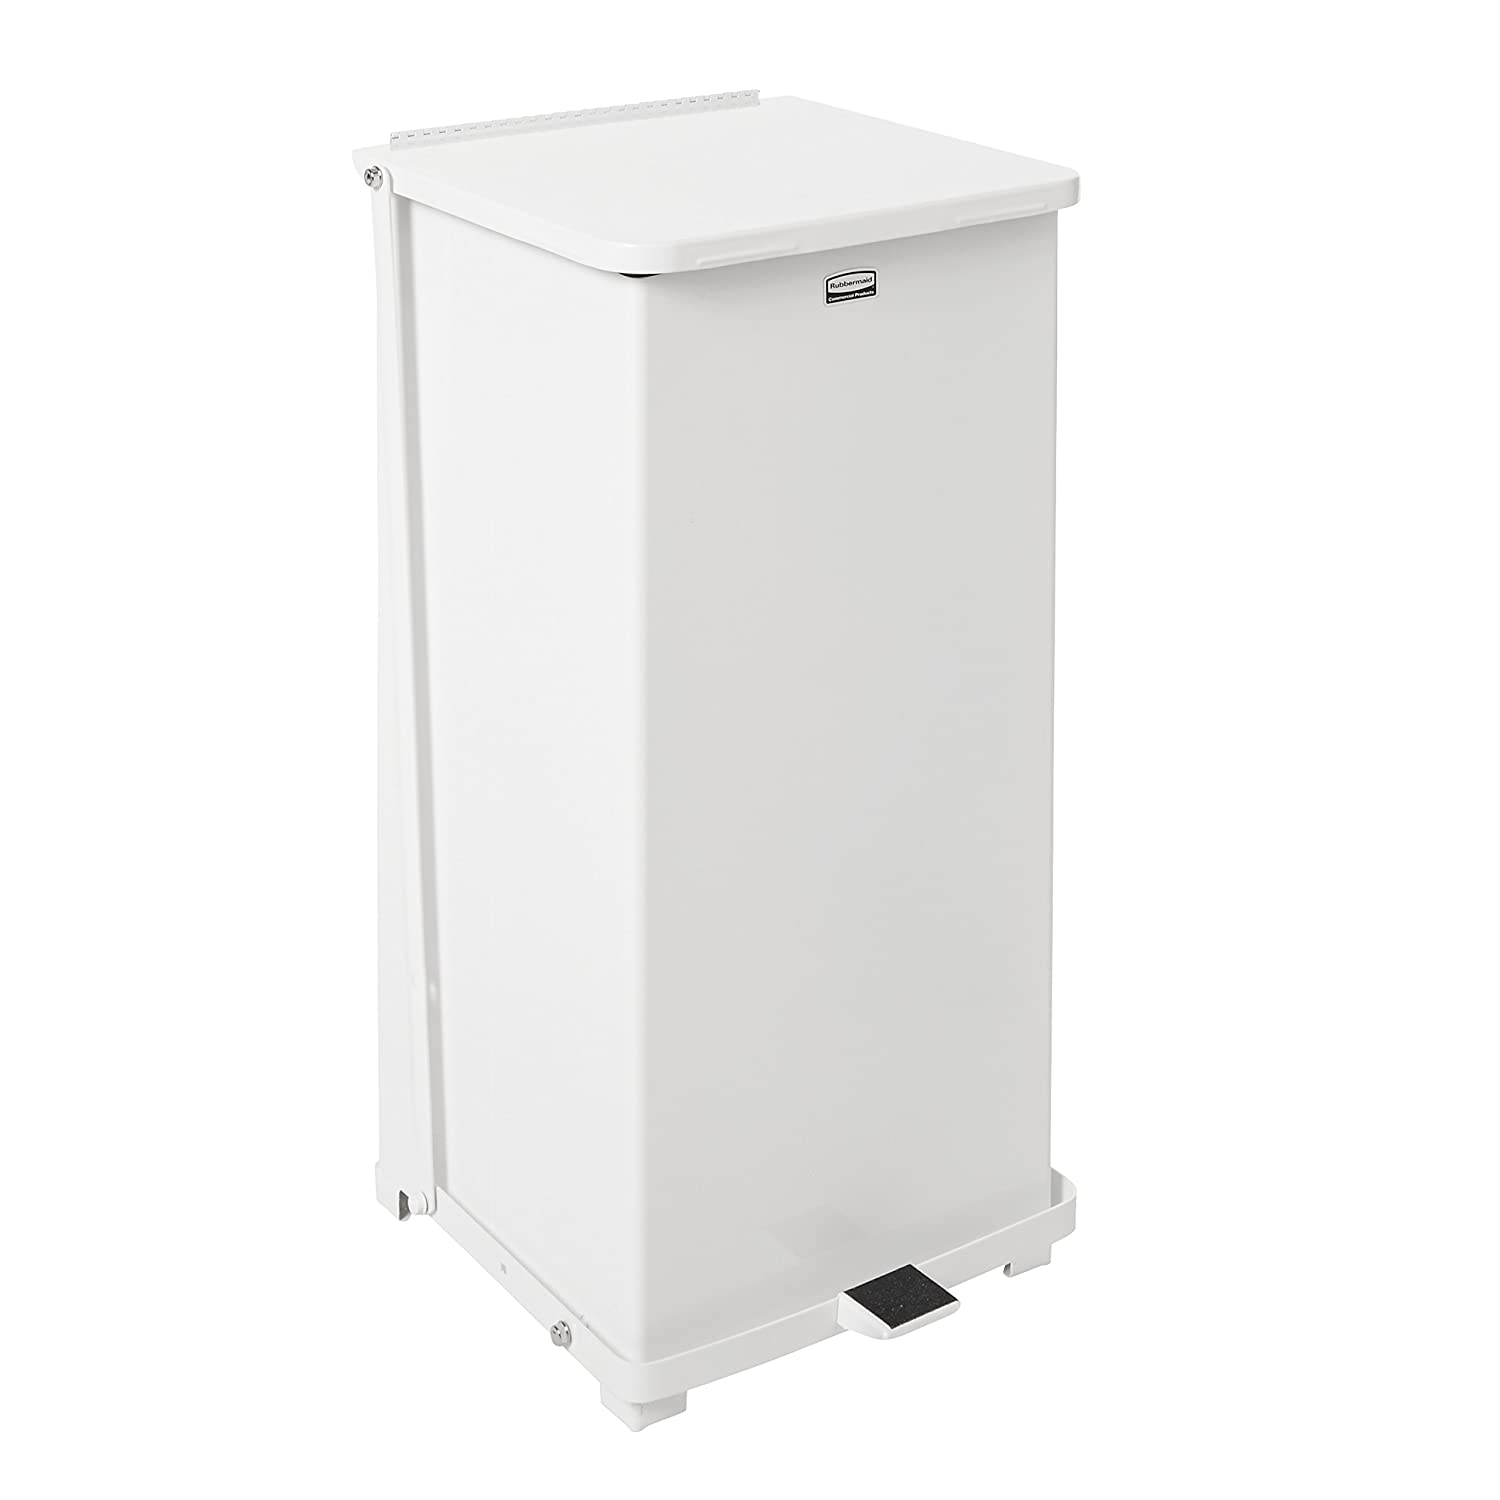 rubbermaid mercial defenders step on trash can 24 gallon